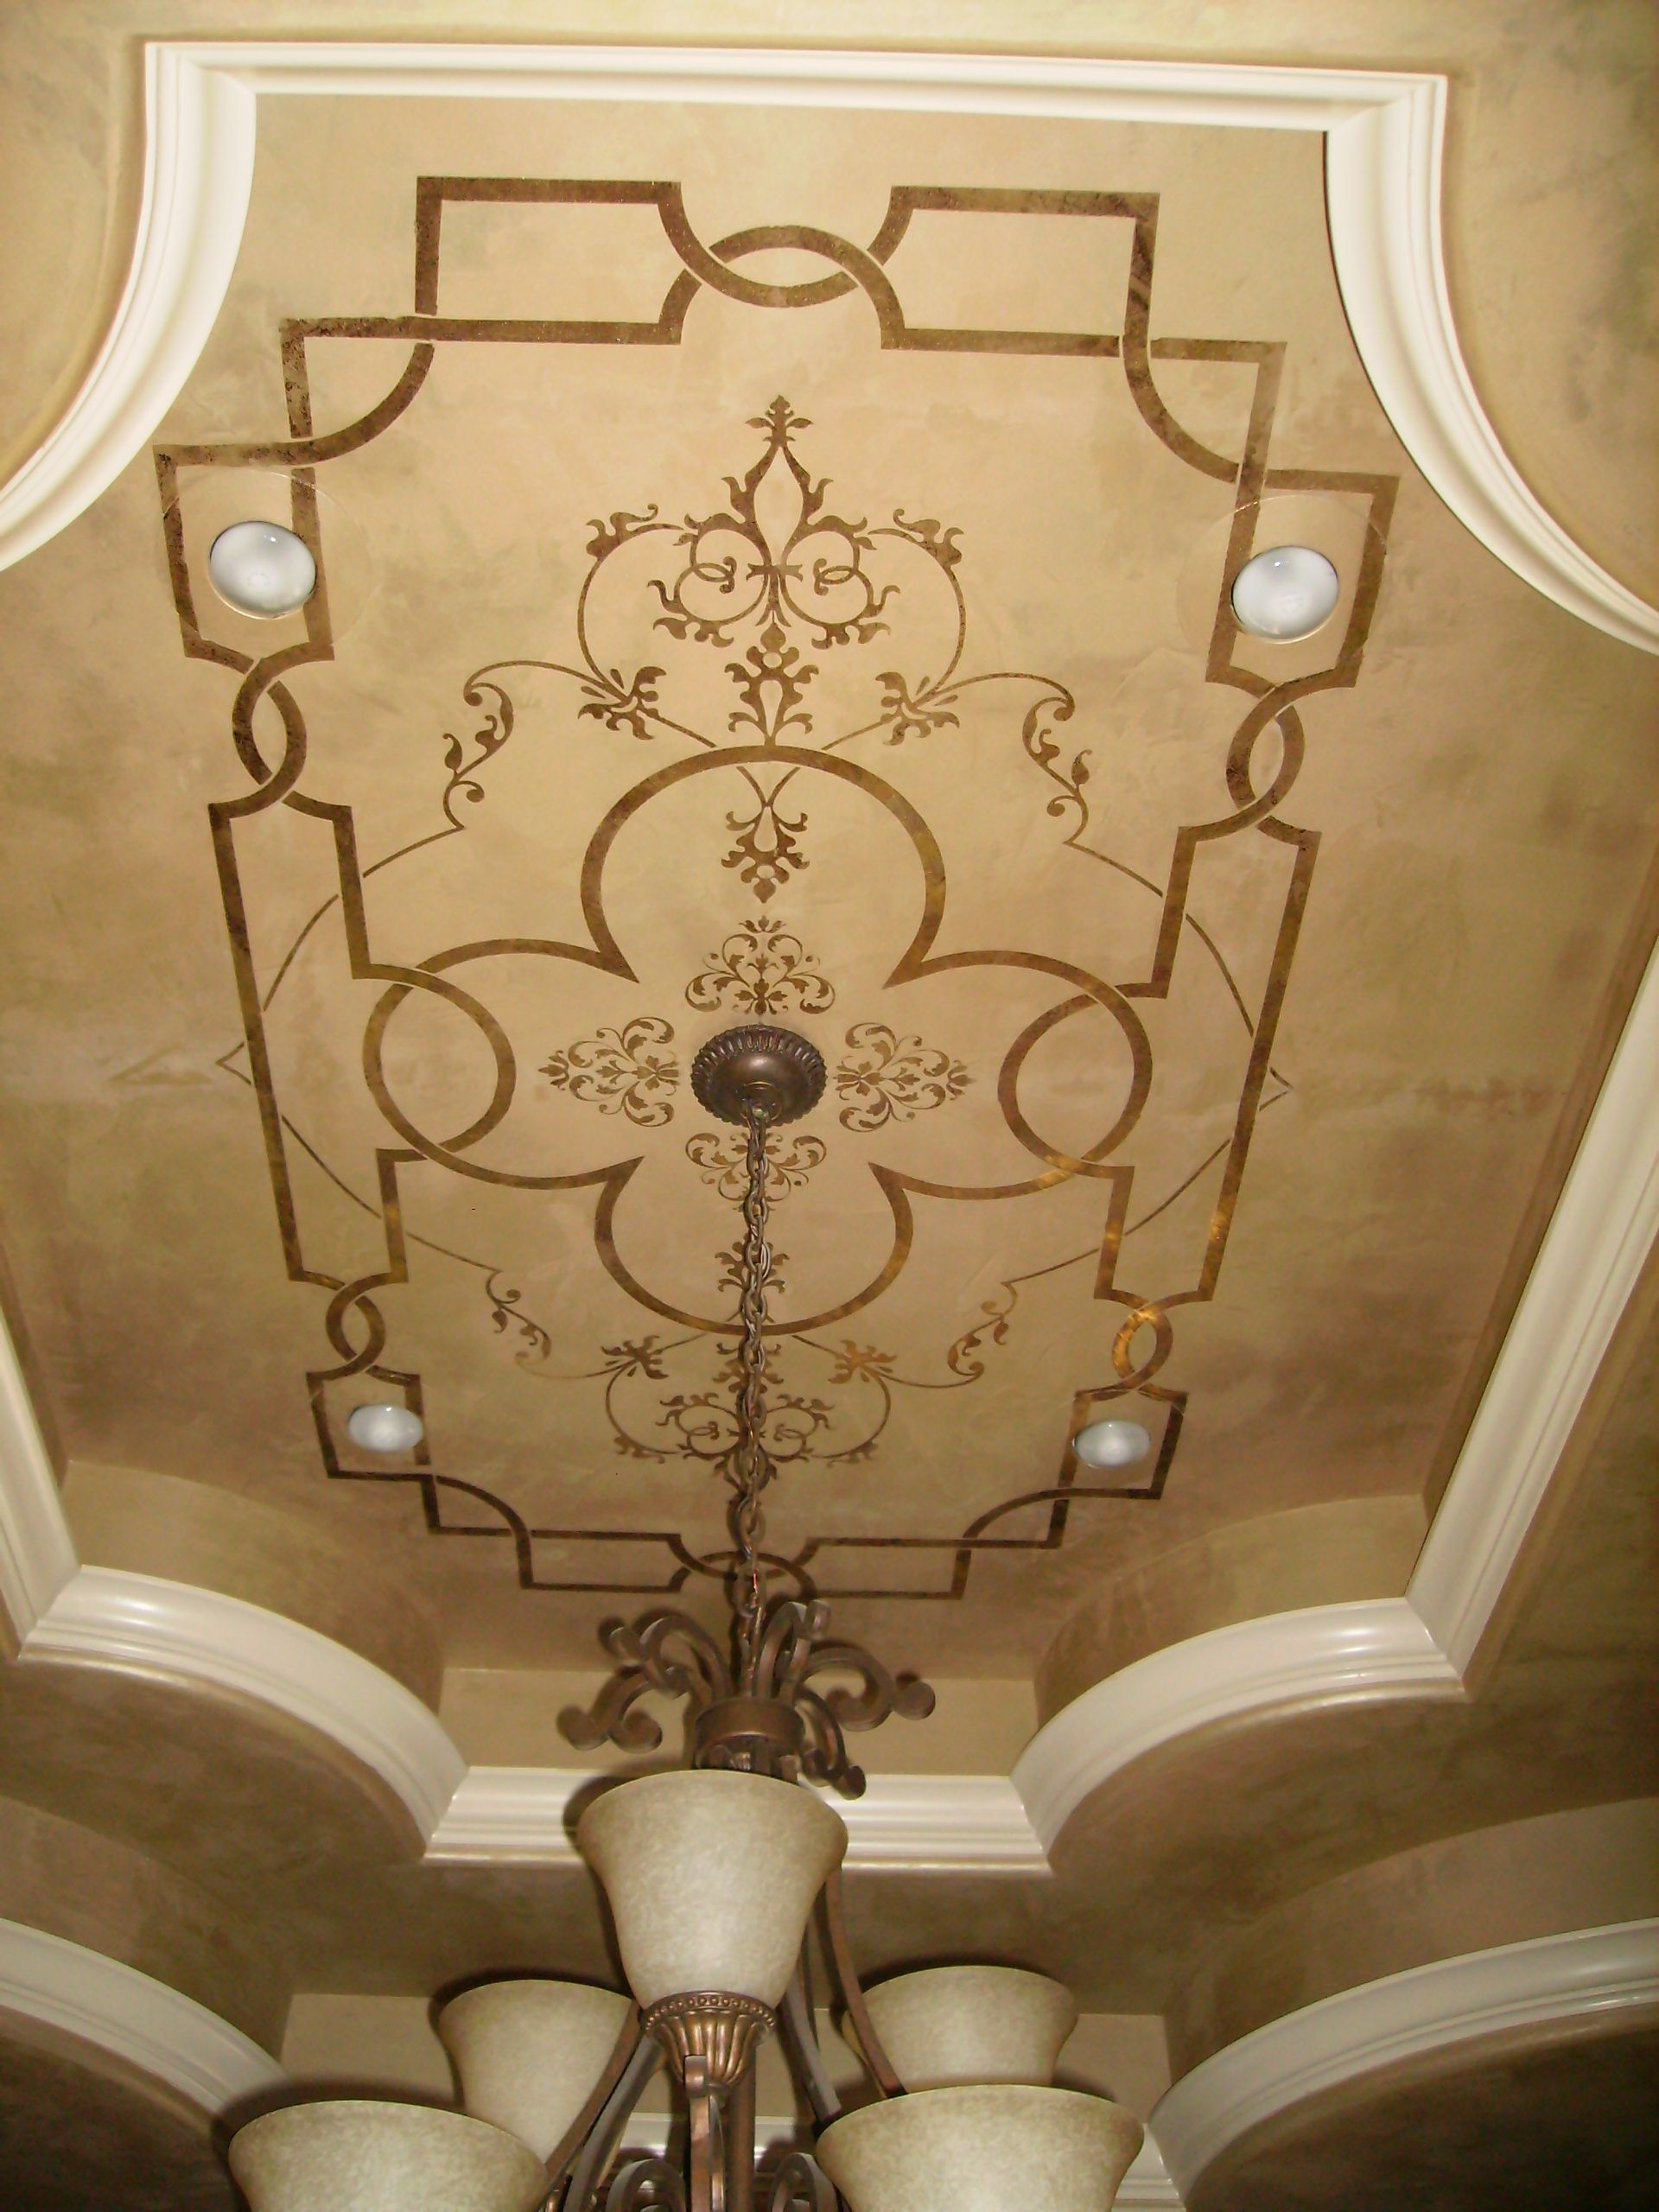 Royal Design Giovannetti Decorative Studio Metallic Plaster Ceiling With Gold